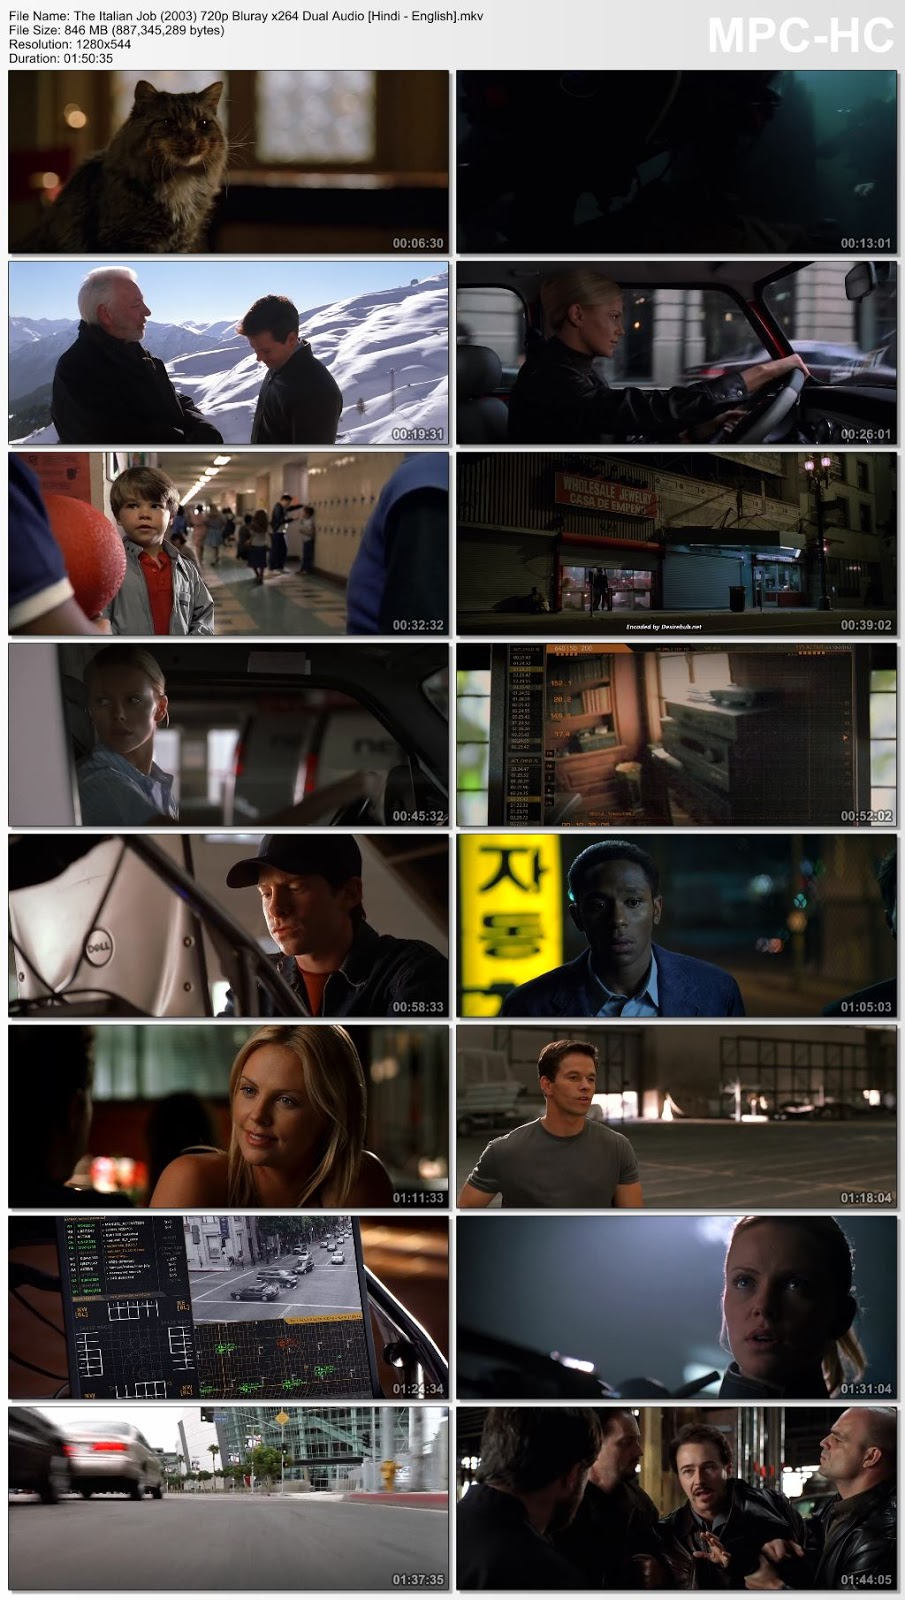 The Italian Job (2003) 720p Bluray x264 Dual Audio [Hindi – English] – 850MB Desirehub